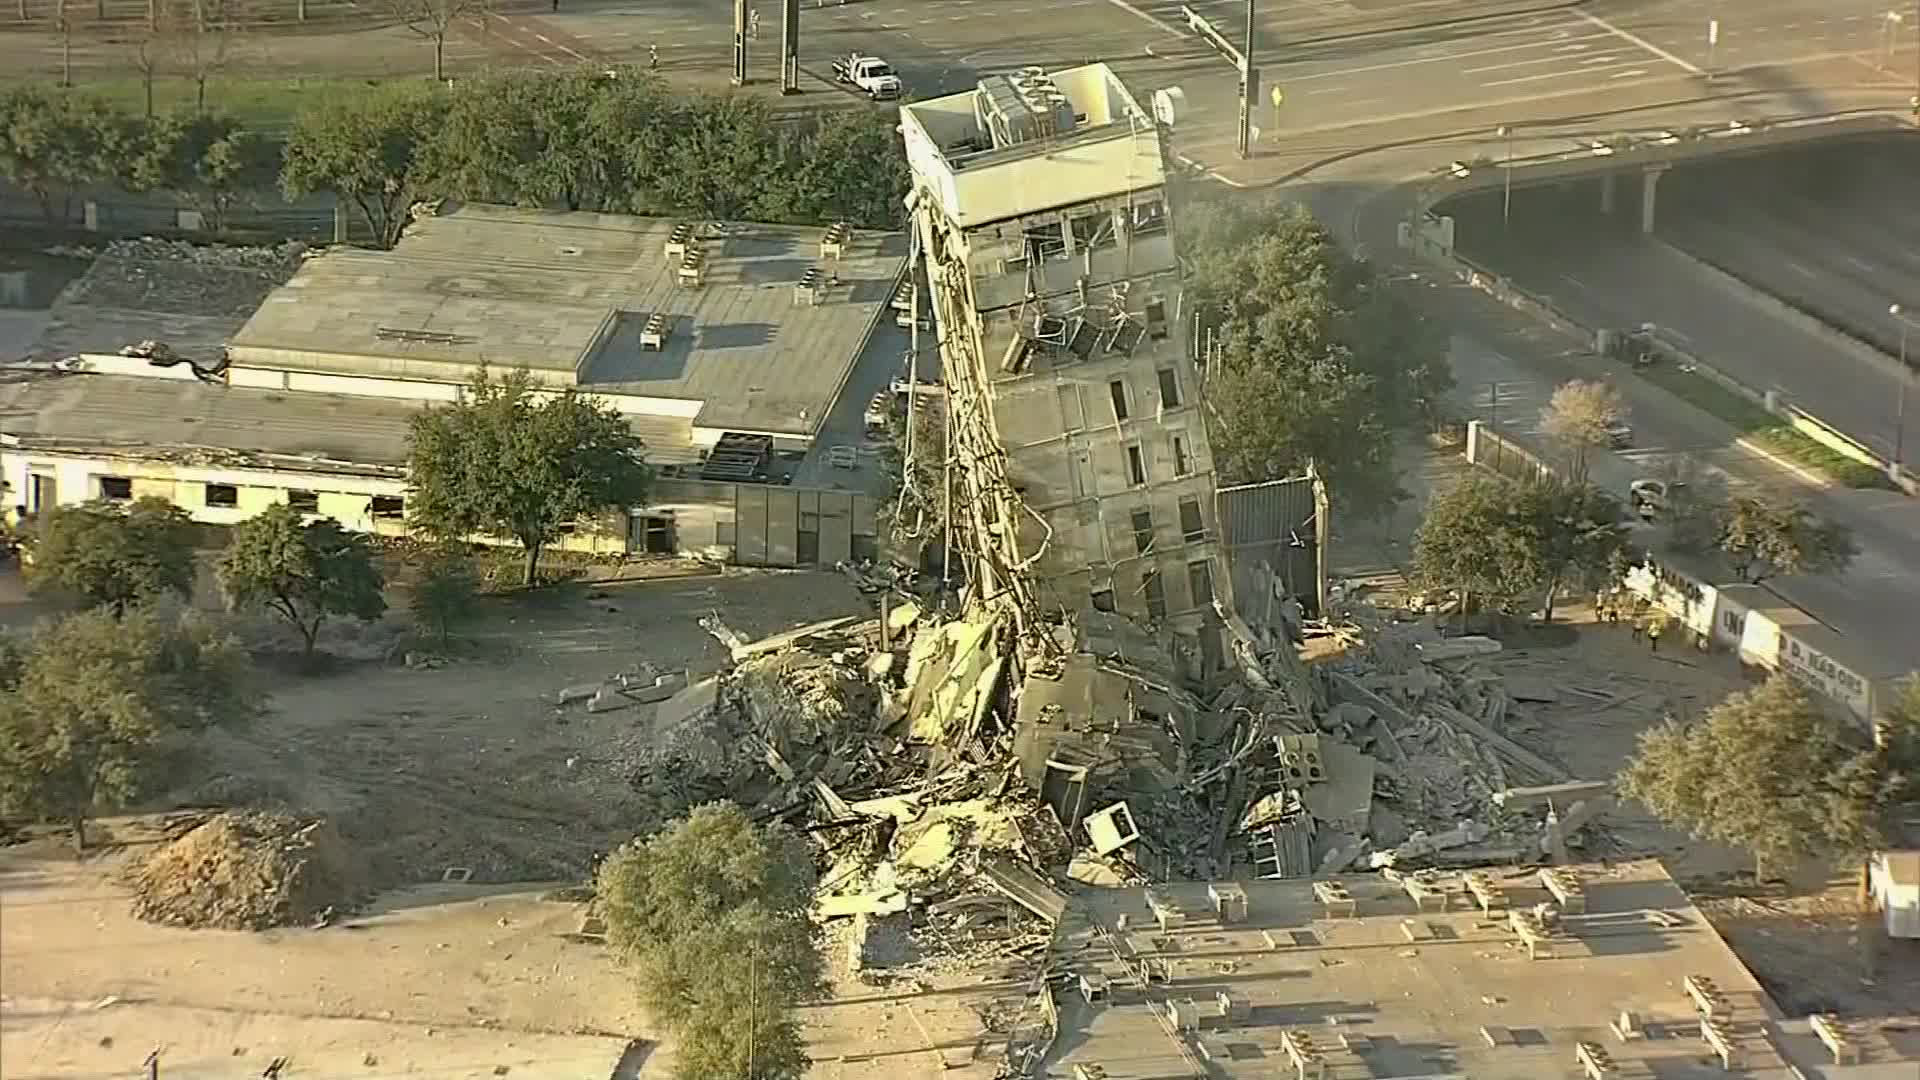 A Dallas building is still standing after an attempt to implode it to make way for new development failed